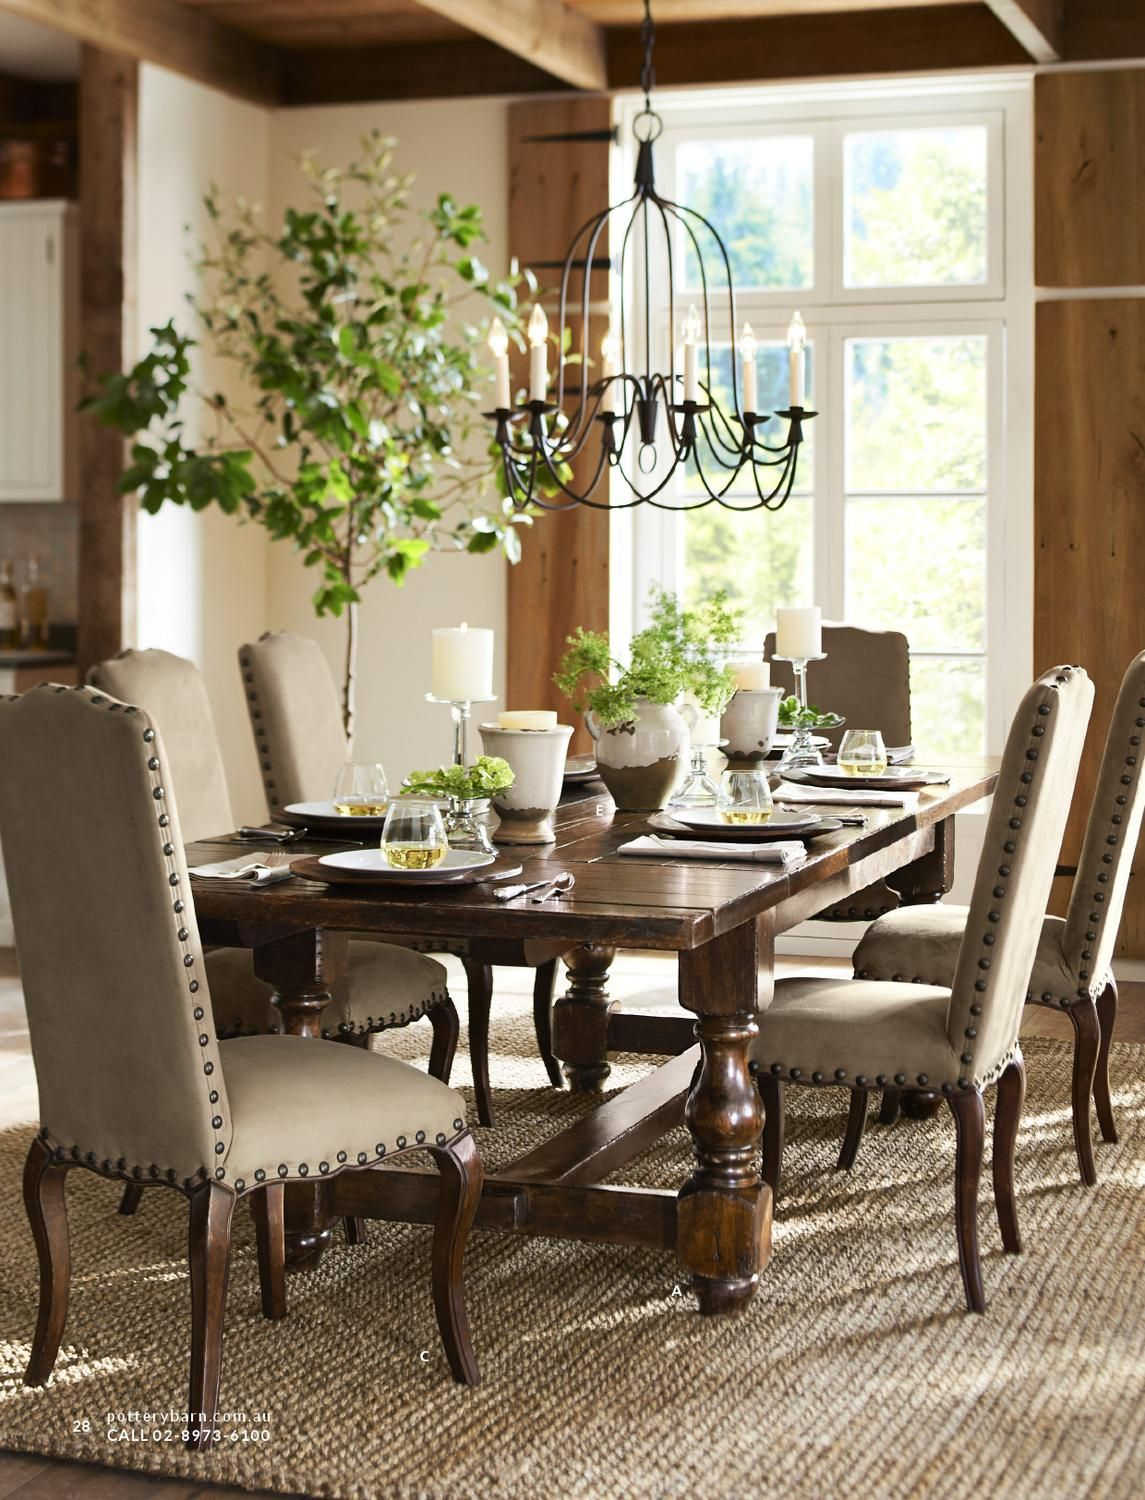 Pottery Barn Australia Summer 2013 Catalog | Dining Room Within Latest Bowry Reclaimed Wood Dining Tables (View 10 of 25)